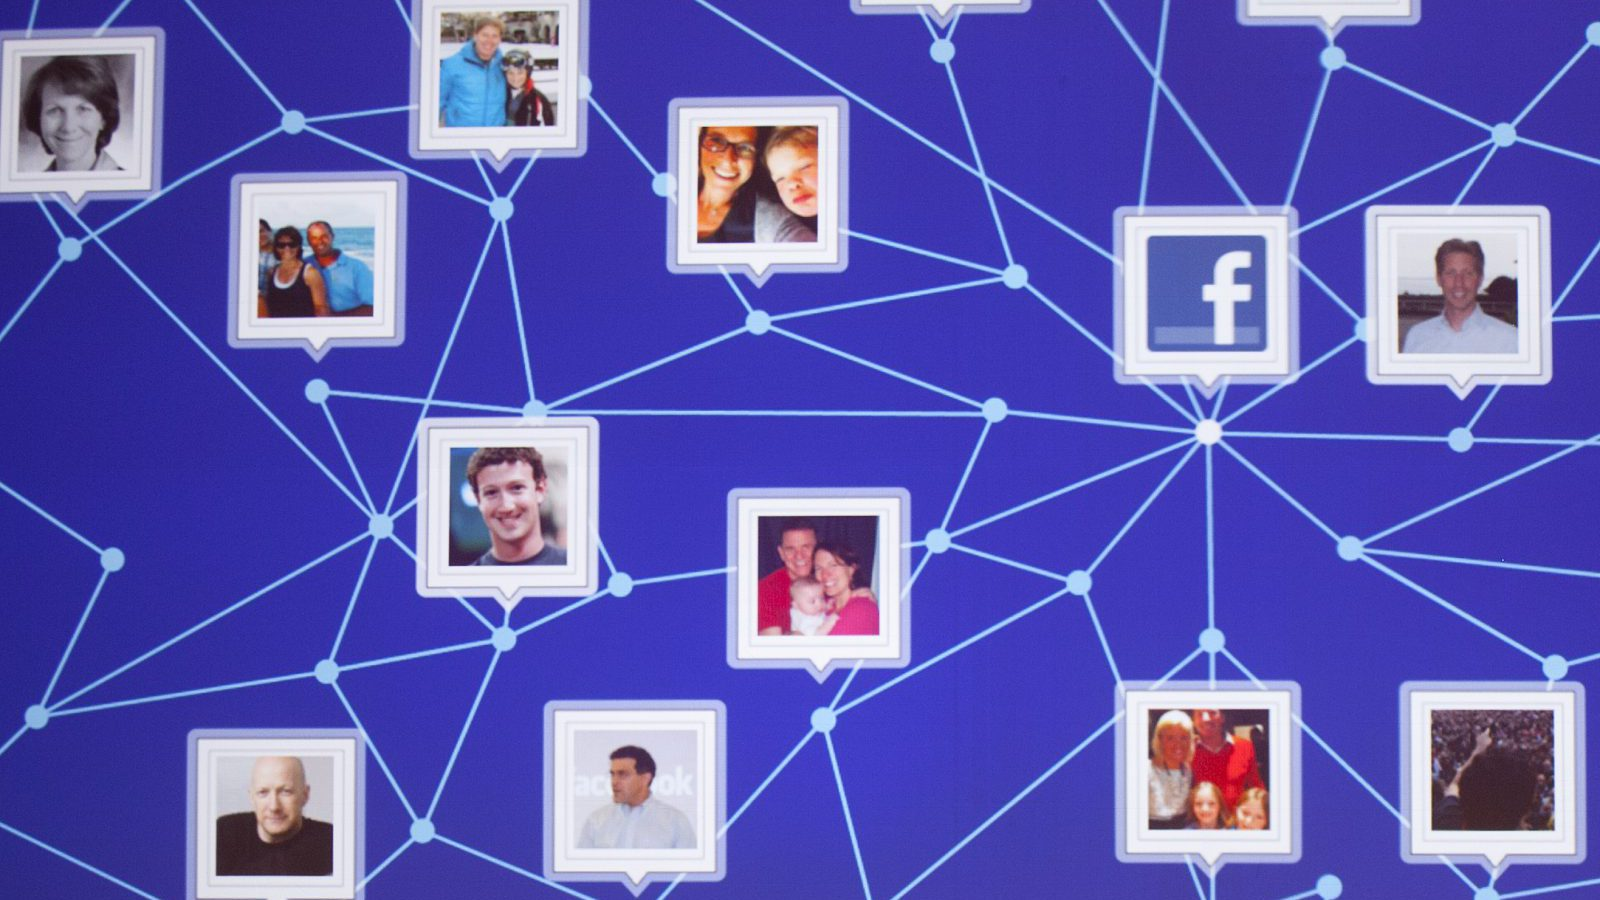 A graphic display of a Facebook network is shown at a Facebook event for marketing professionals, Wednesday, Feb. 29, 2012 in New York.   New, potentially lucrative advertising opportunities are coming to Facebook as a prelude to its initial public offering of stock. The idea is to lure big brands with the promise of effective, precisely targeted ads that reach the social network's 845 million users.